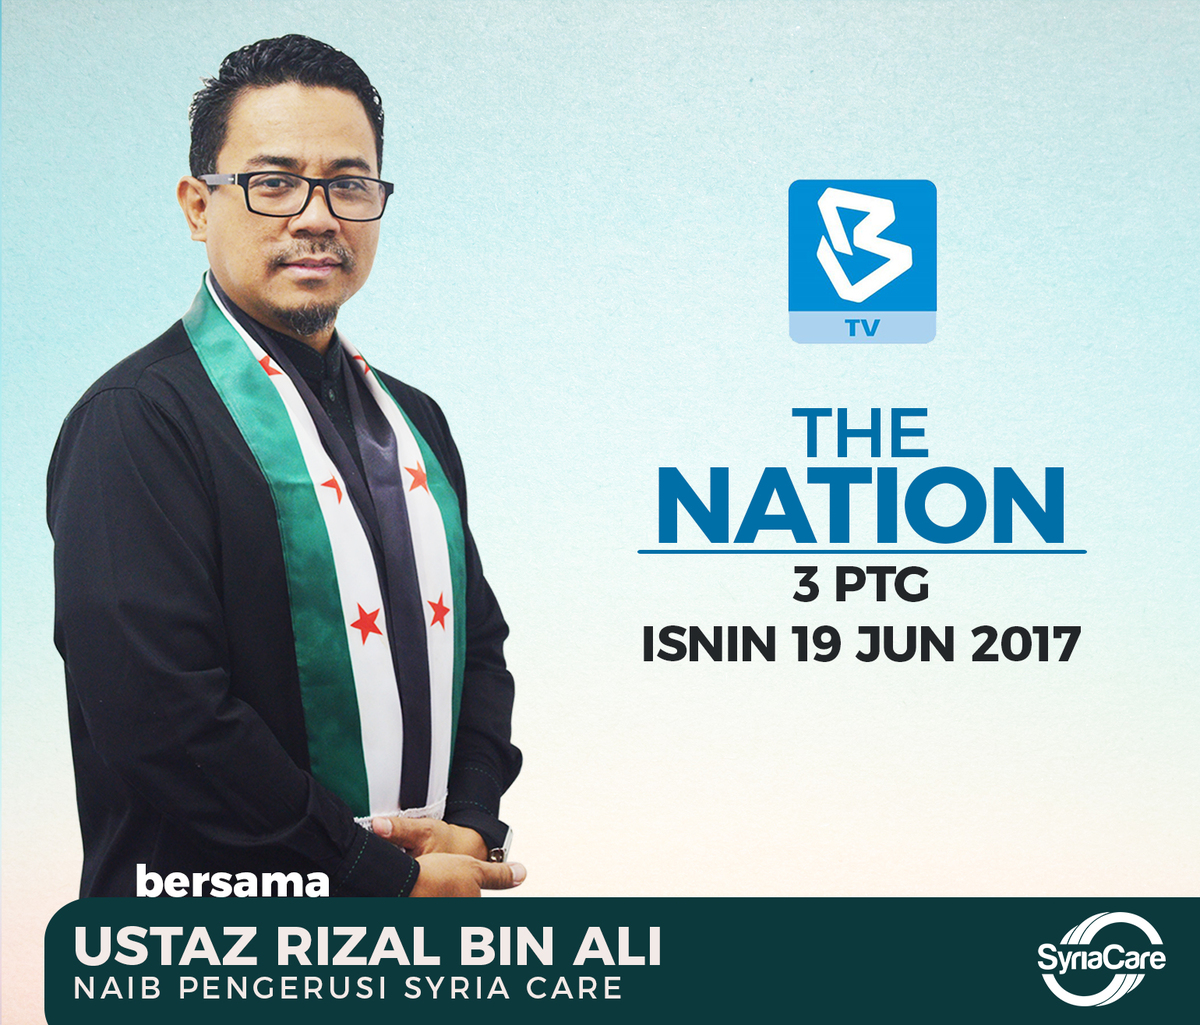 BERNAMA TV USTAZAH THE NATION